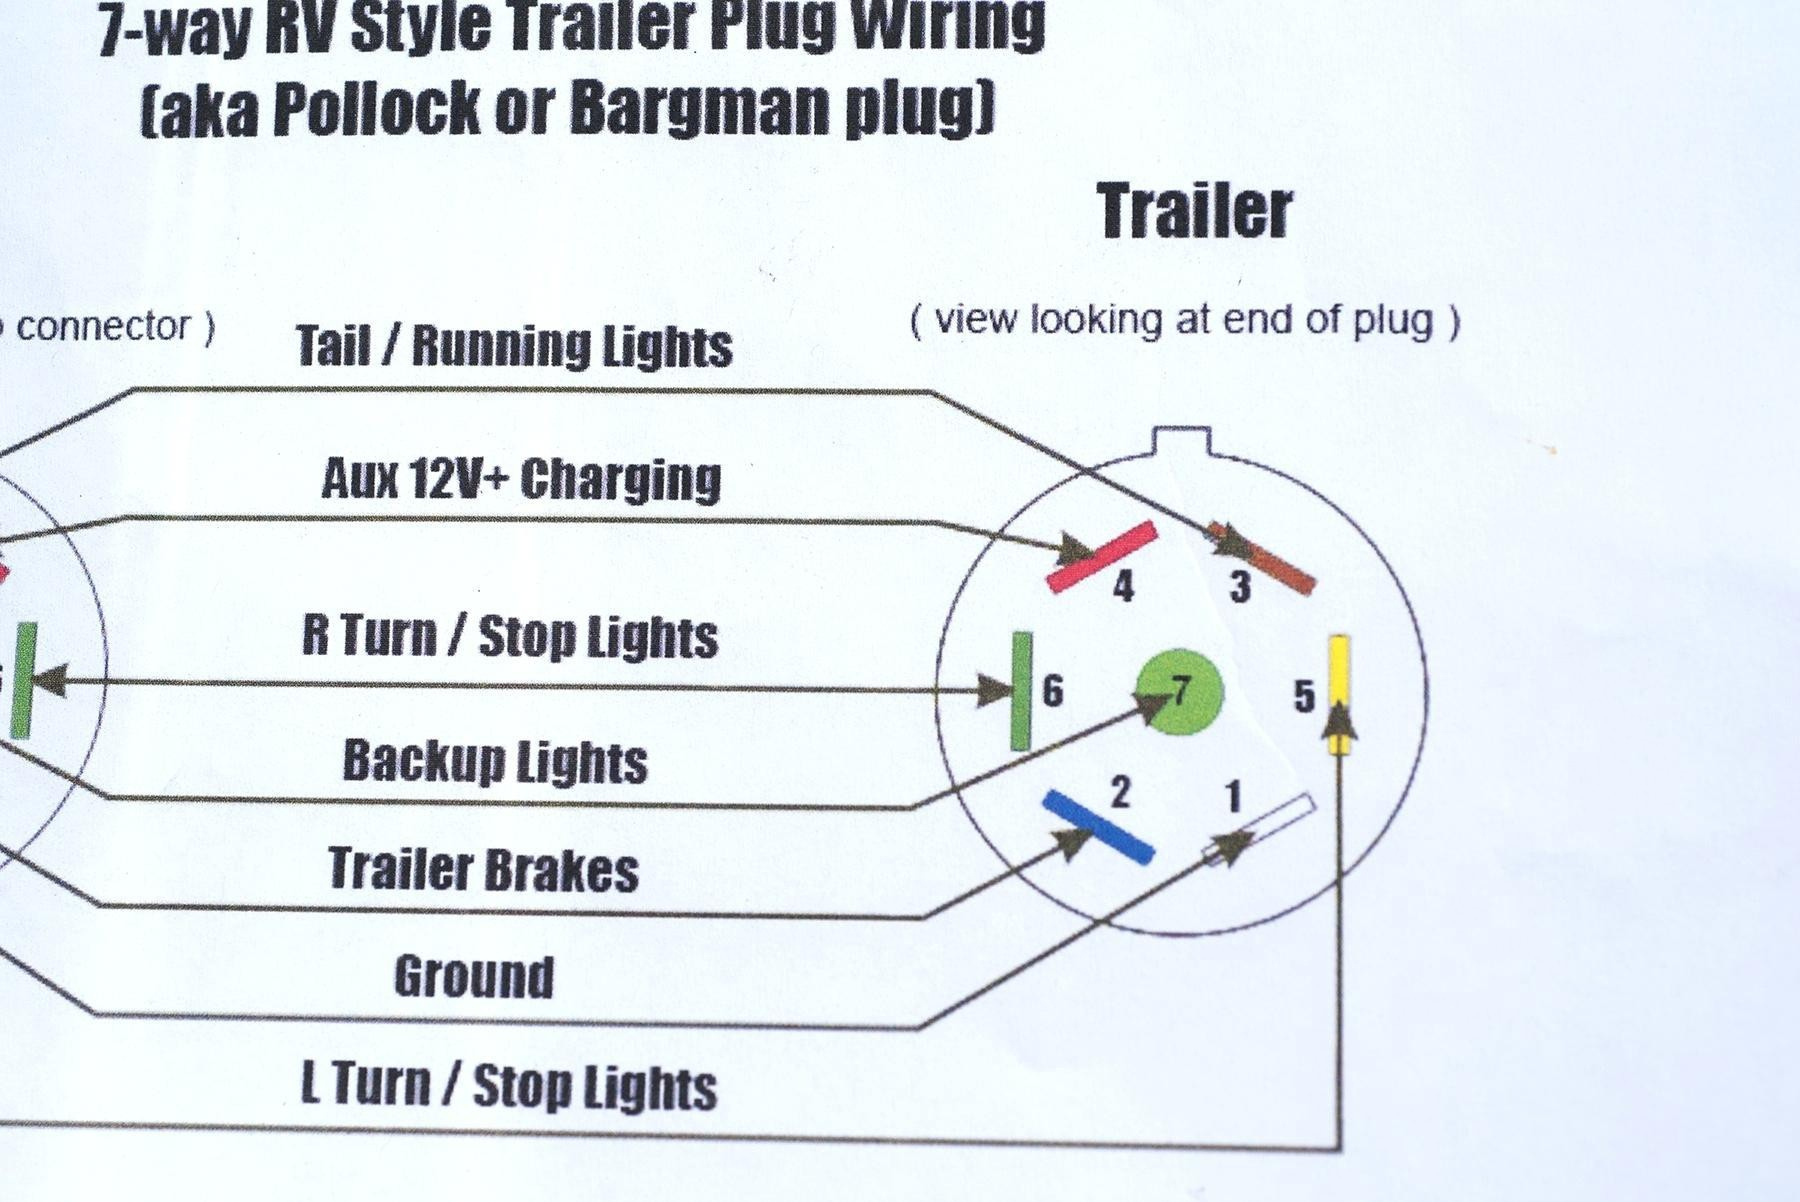 Trailer Wiring Diagram 4 Way Round - Detailed Wiring Diagram - 4 Round Trailer Wiring Diagram